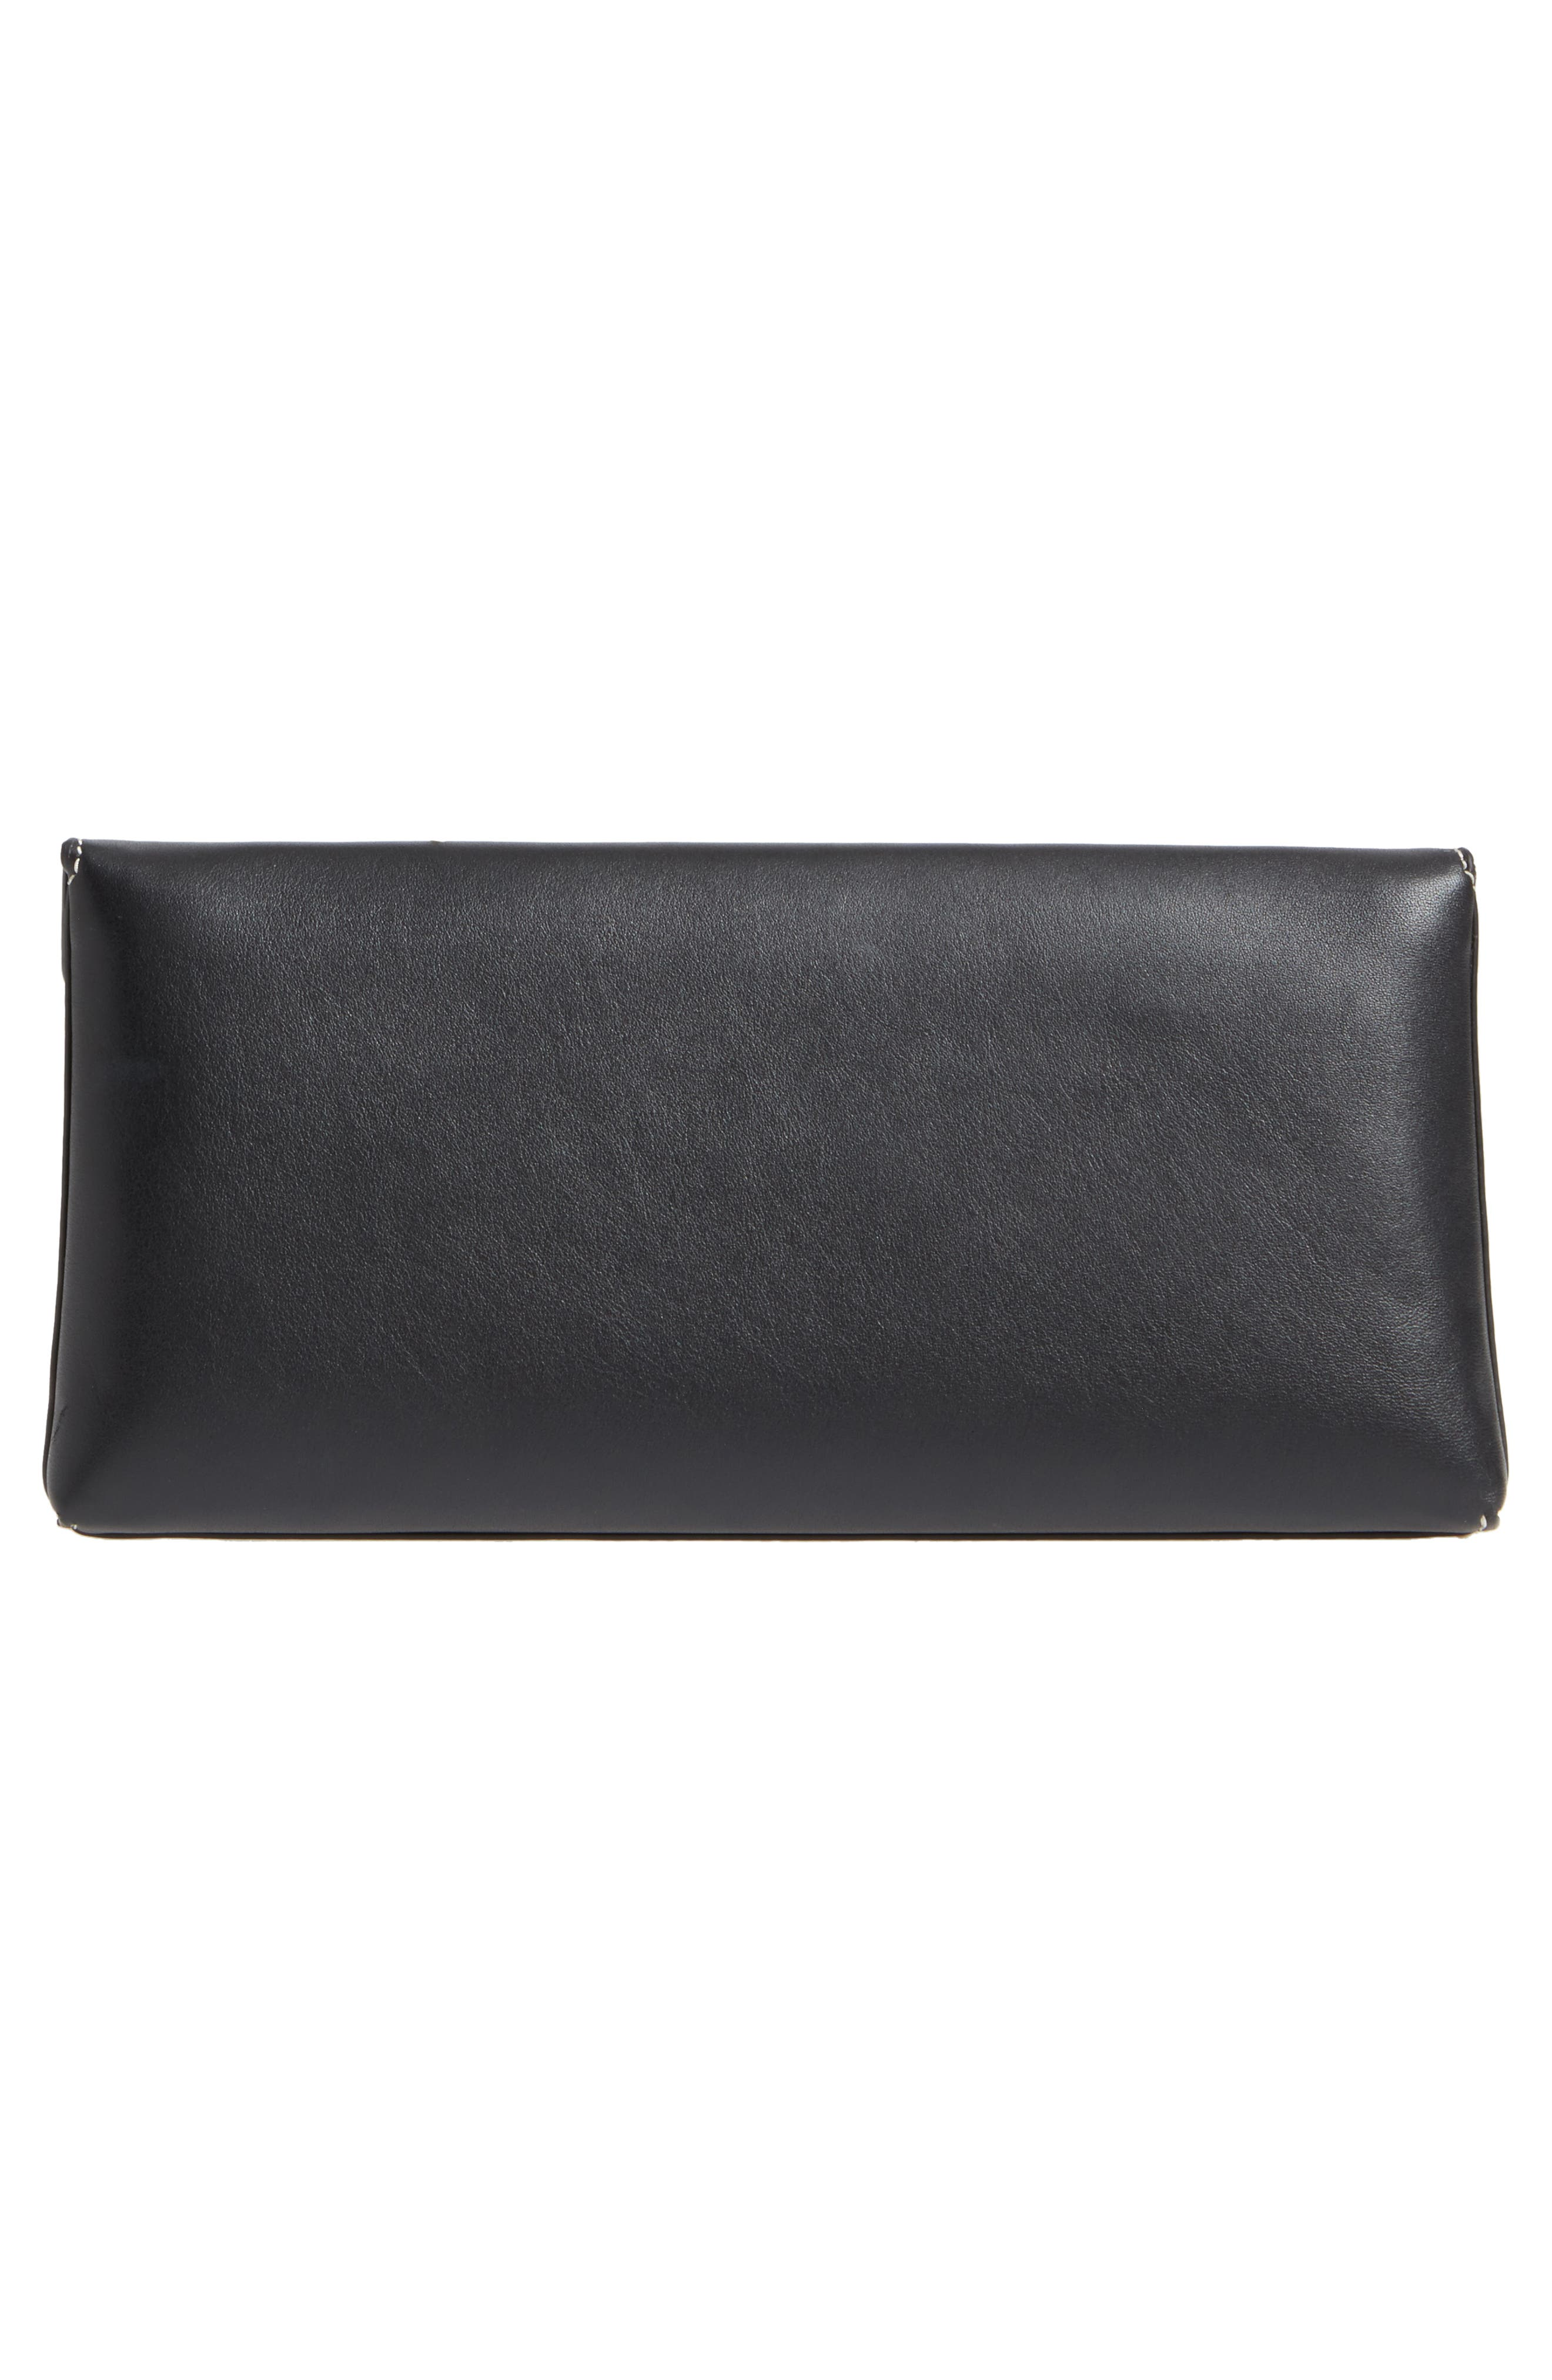 Alternate Image 3  - Tory Burch Miller Leather Clutch